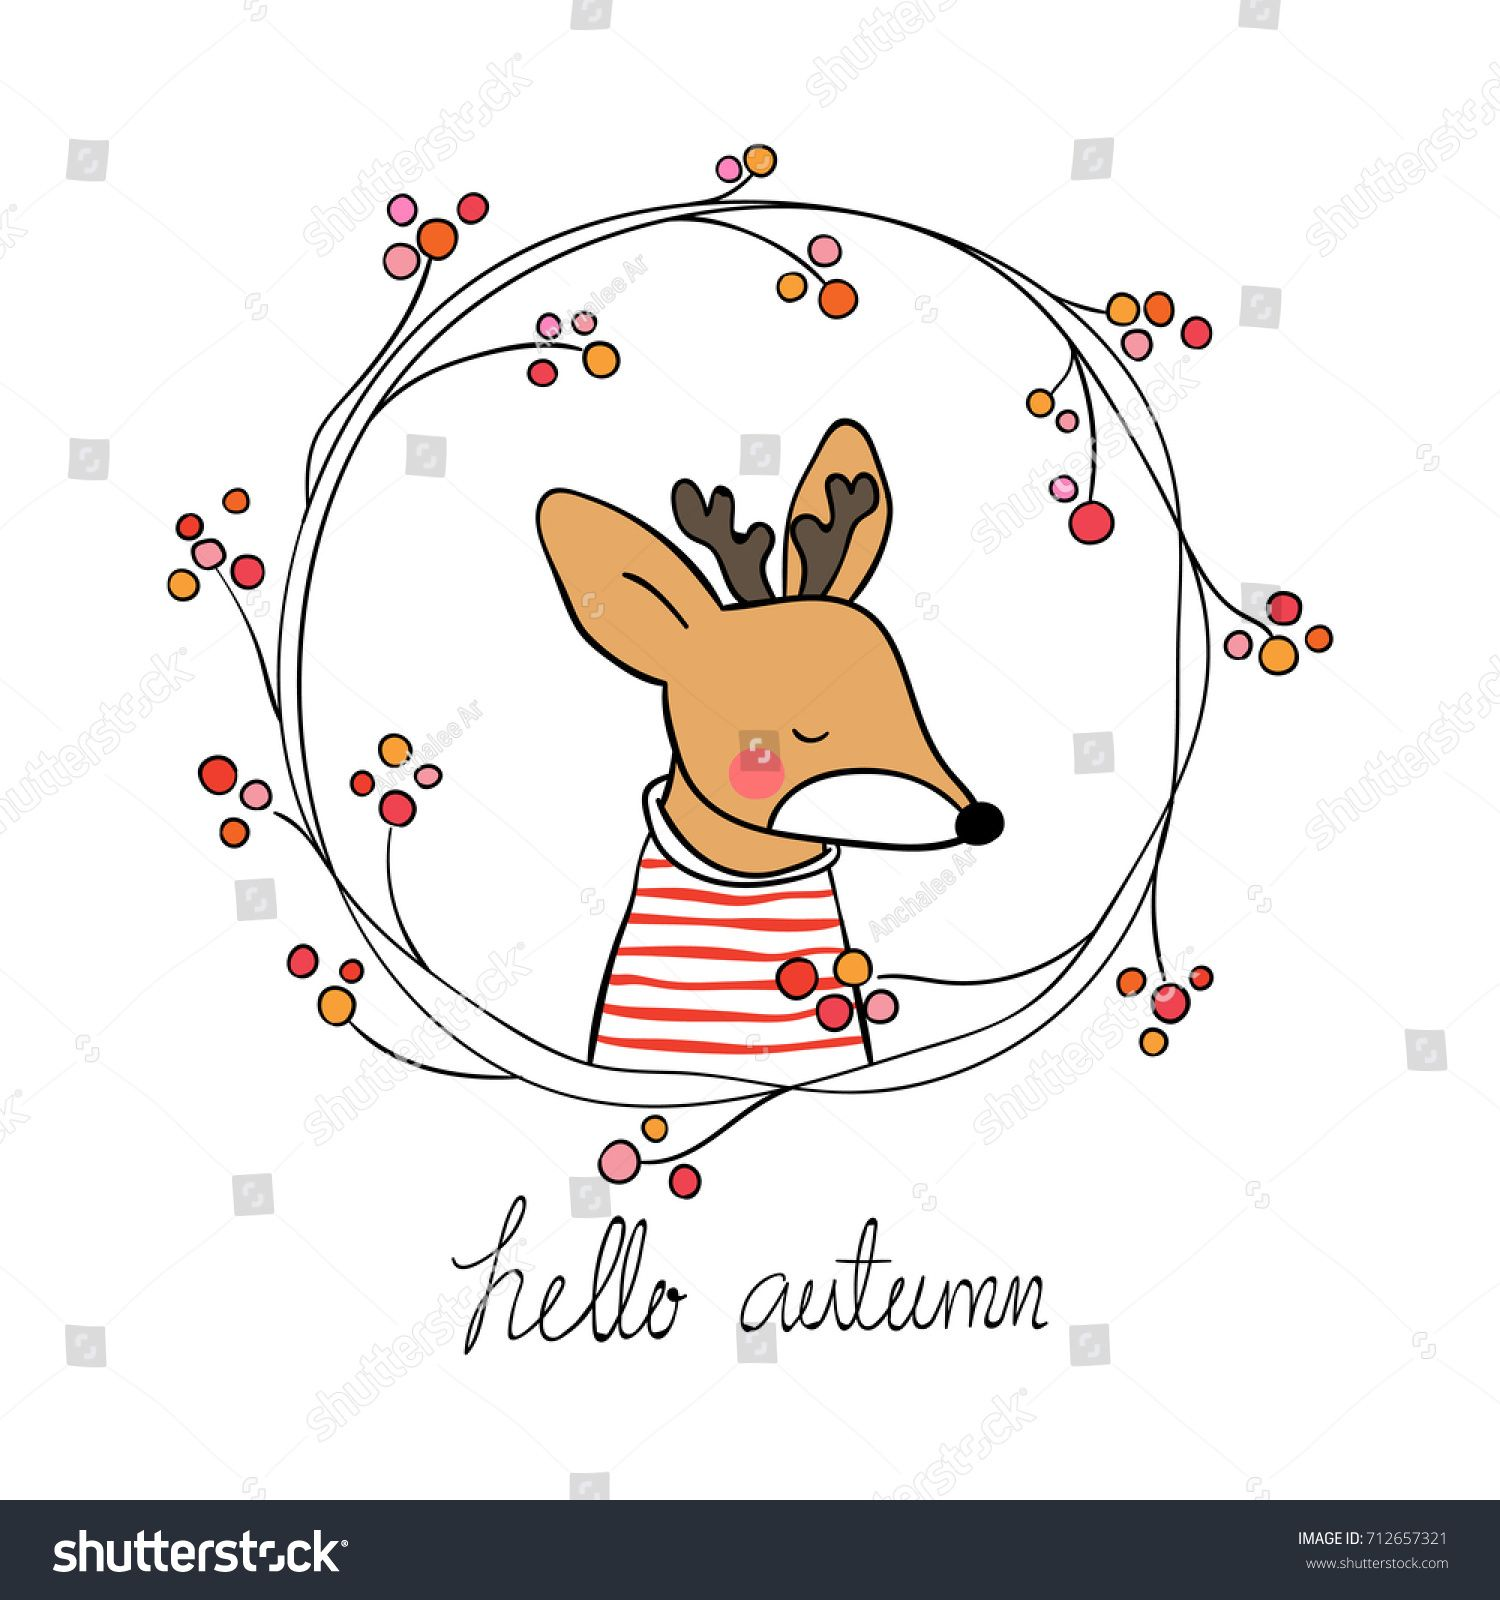 Photo of Cute Draw Vector Illustration Deer Beauty Stock Vector (Royalty Free) 712657321